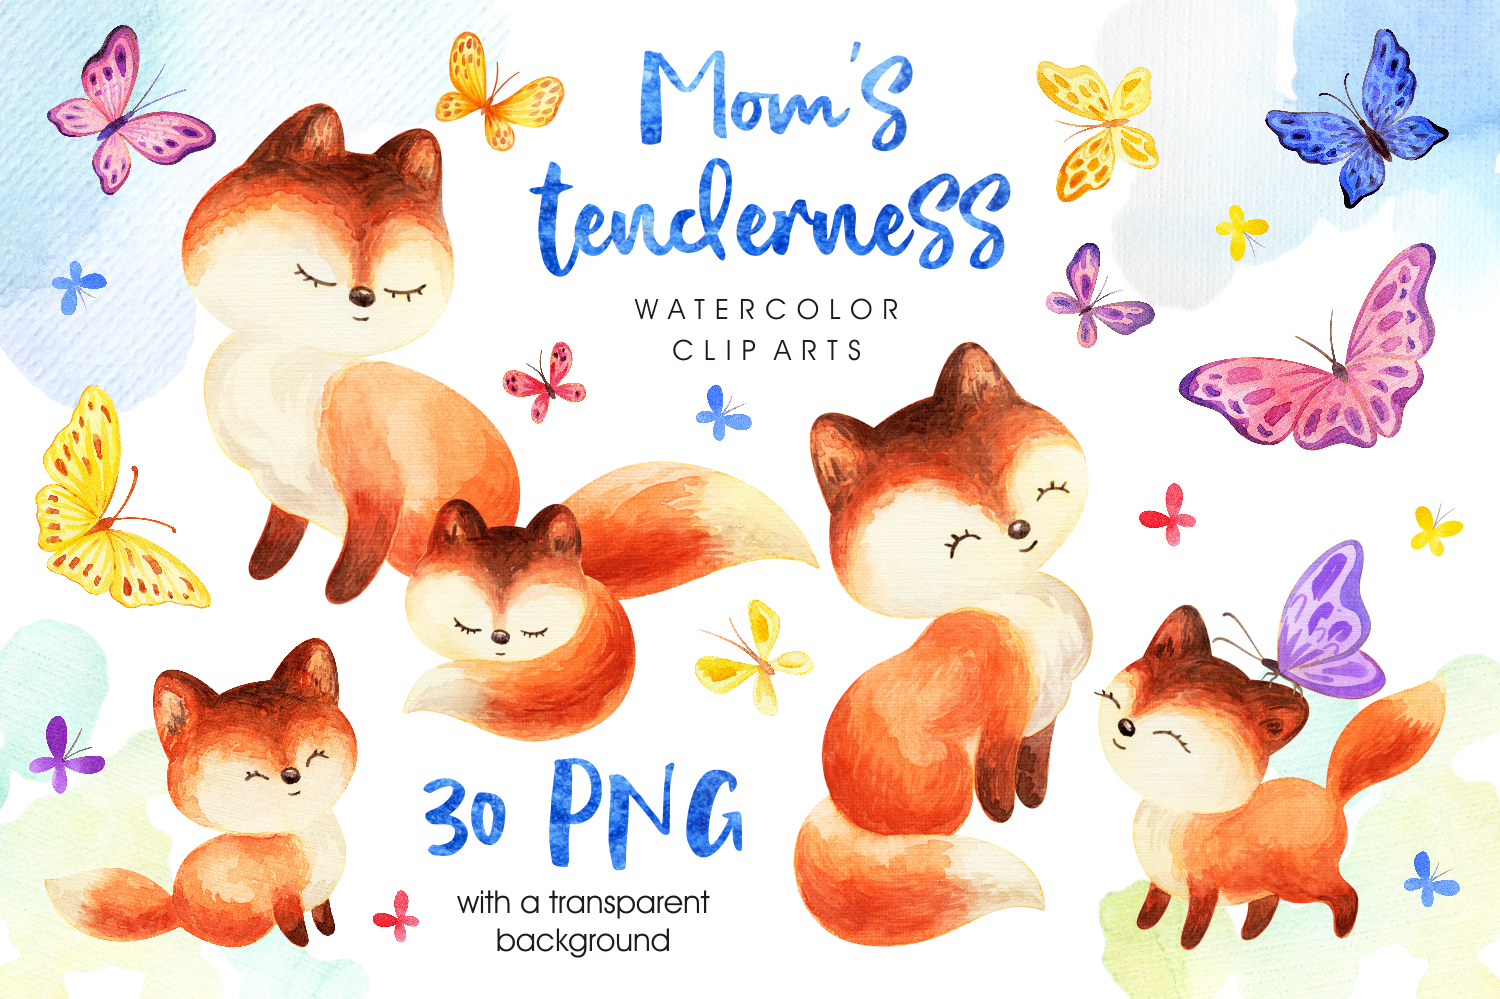 Mom's tenderness. Watercolor foxes and butterflies example image 1